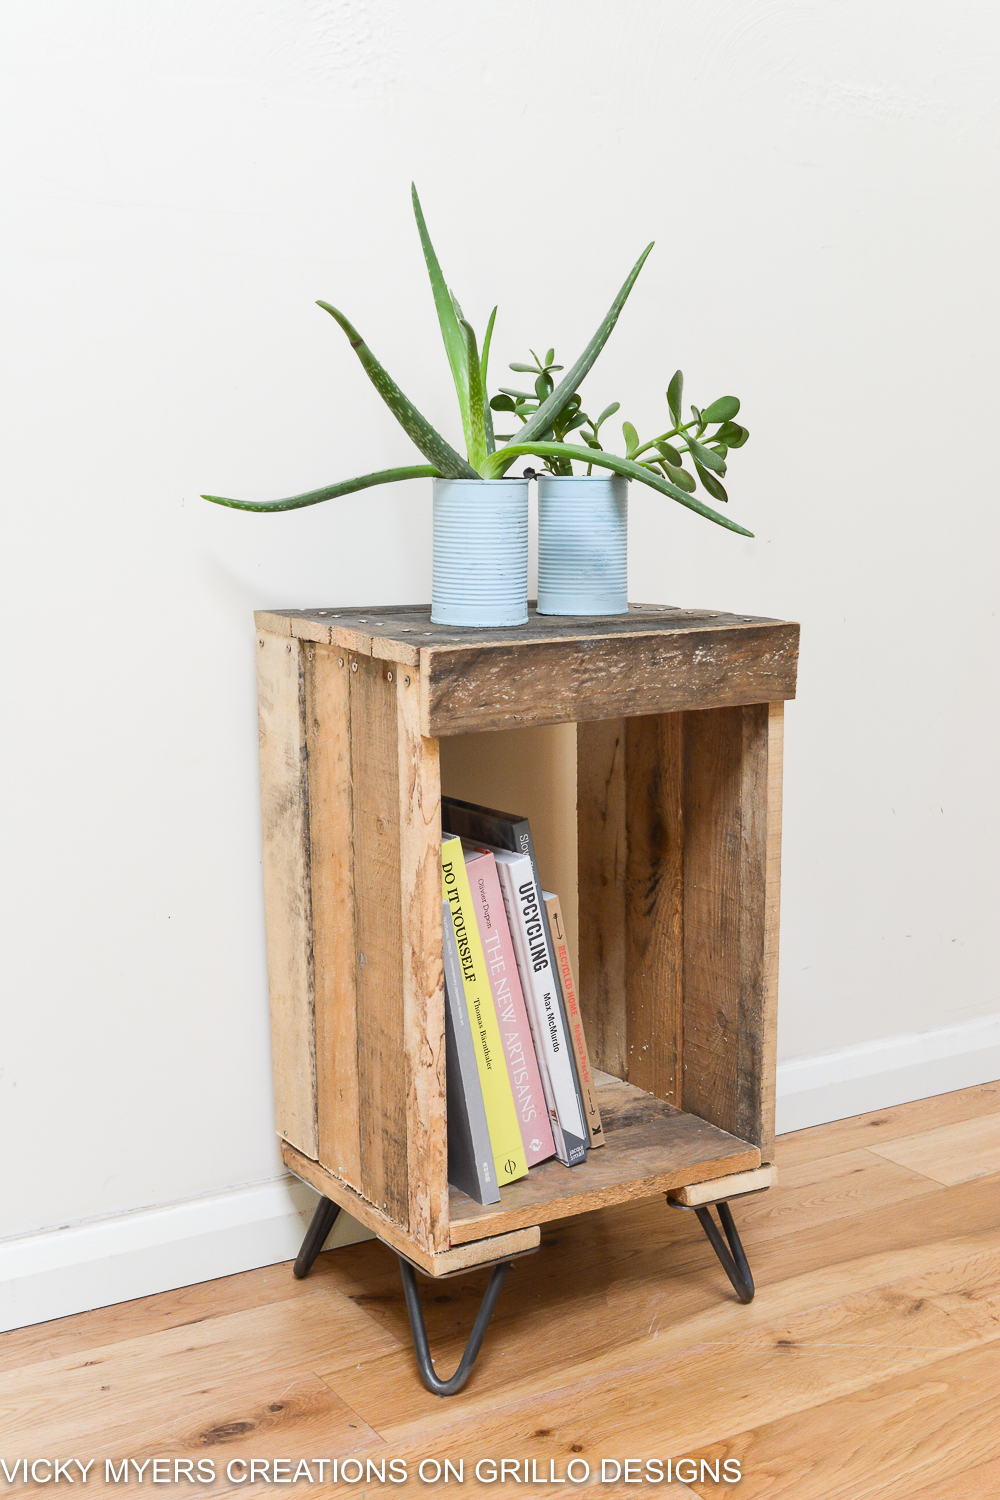 Easy tutorial on how to make a wooden pallet side table/ Vicky Myers Creations on Grillo Designs Blog